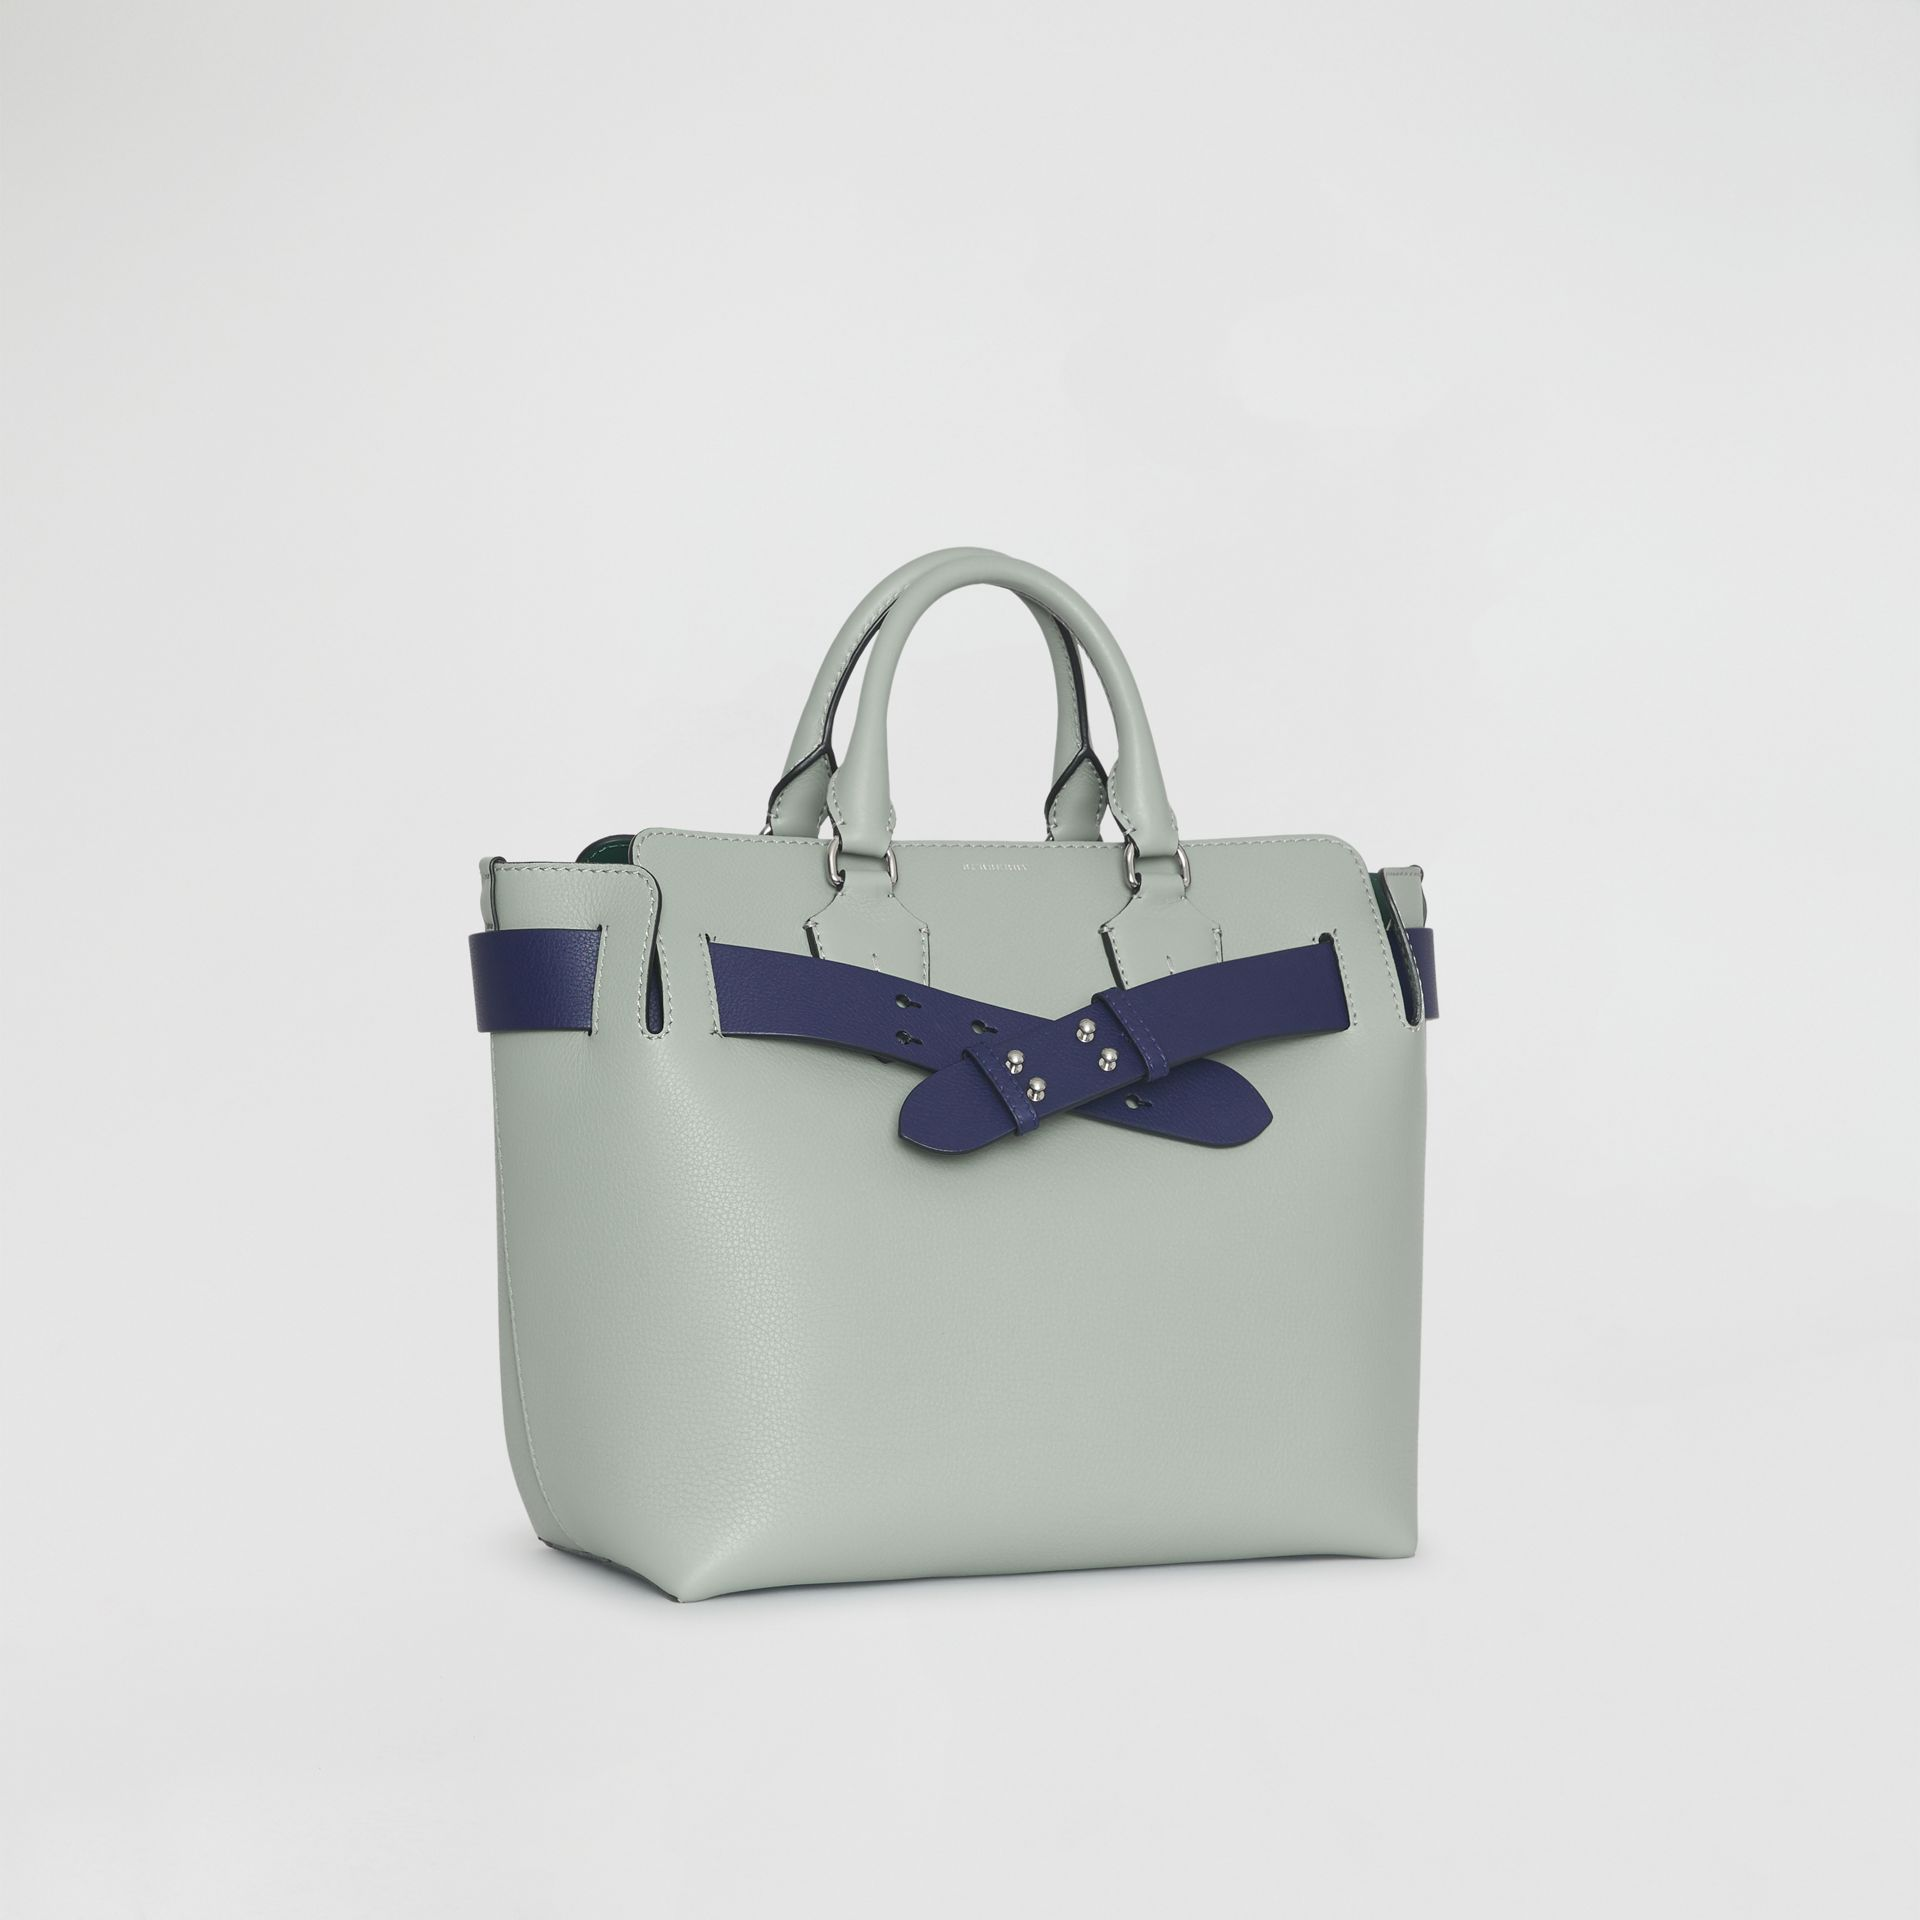 Sac The Belt moyen en cuir (Gris Bleu) - Femme | Burberry - photo de la galerie 6